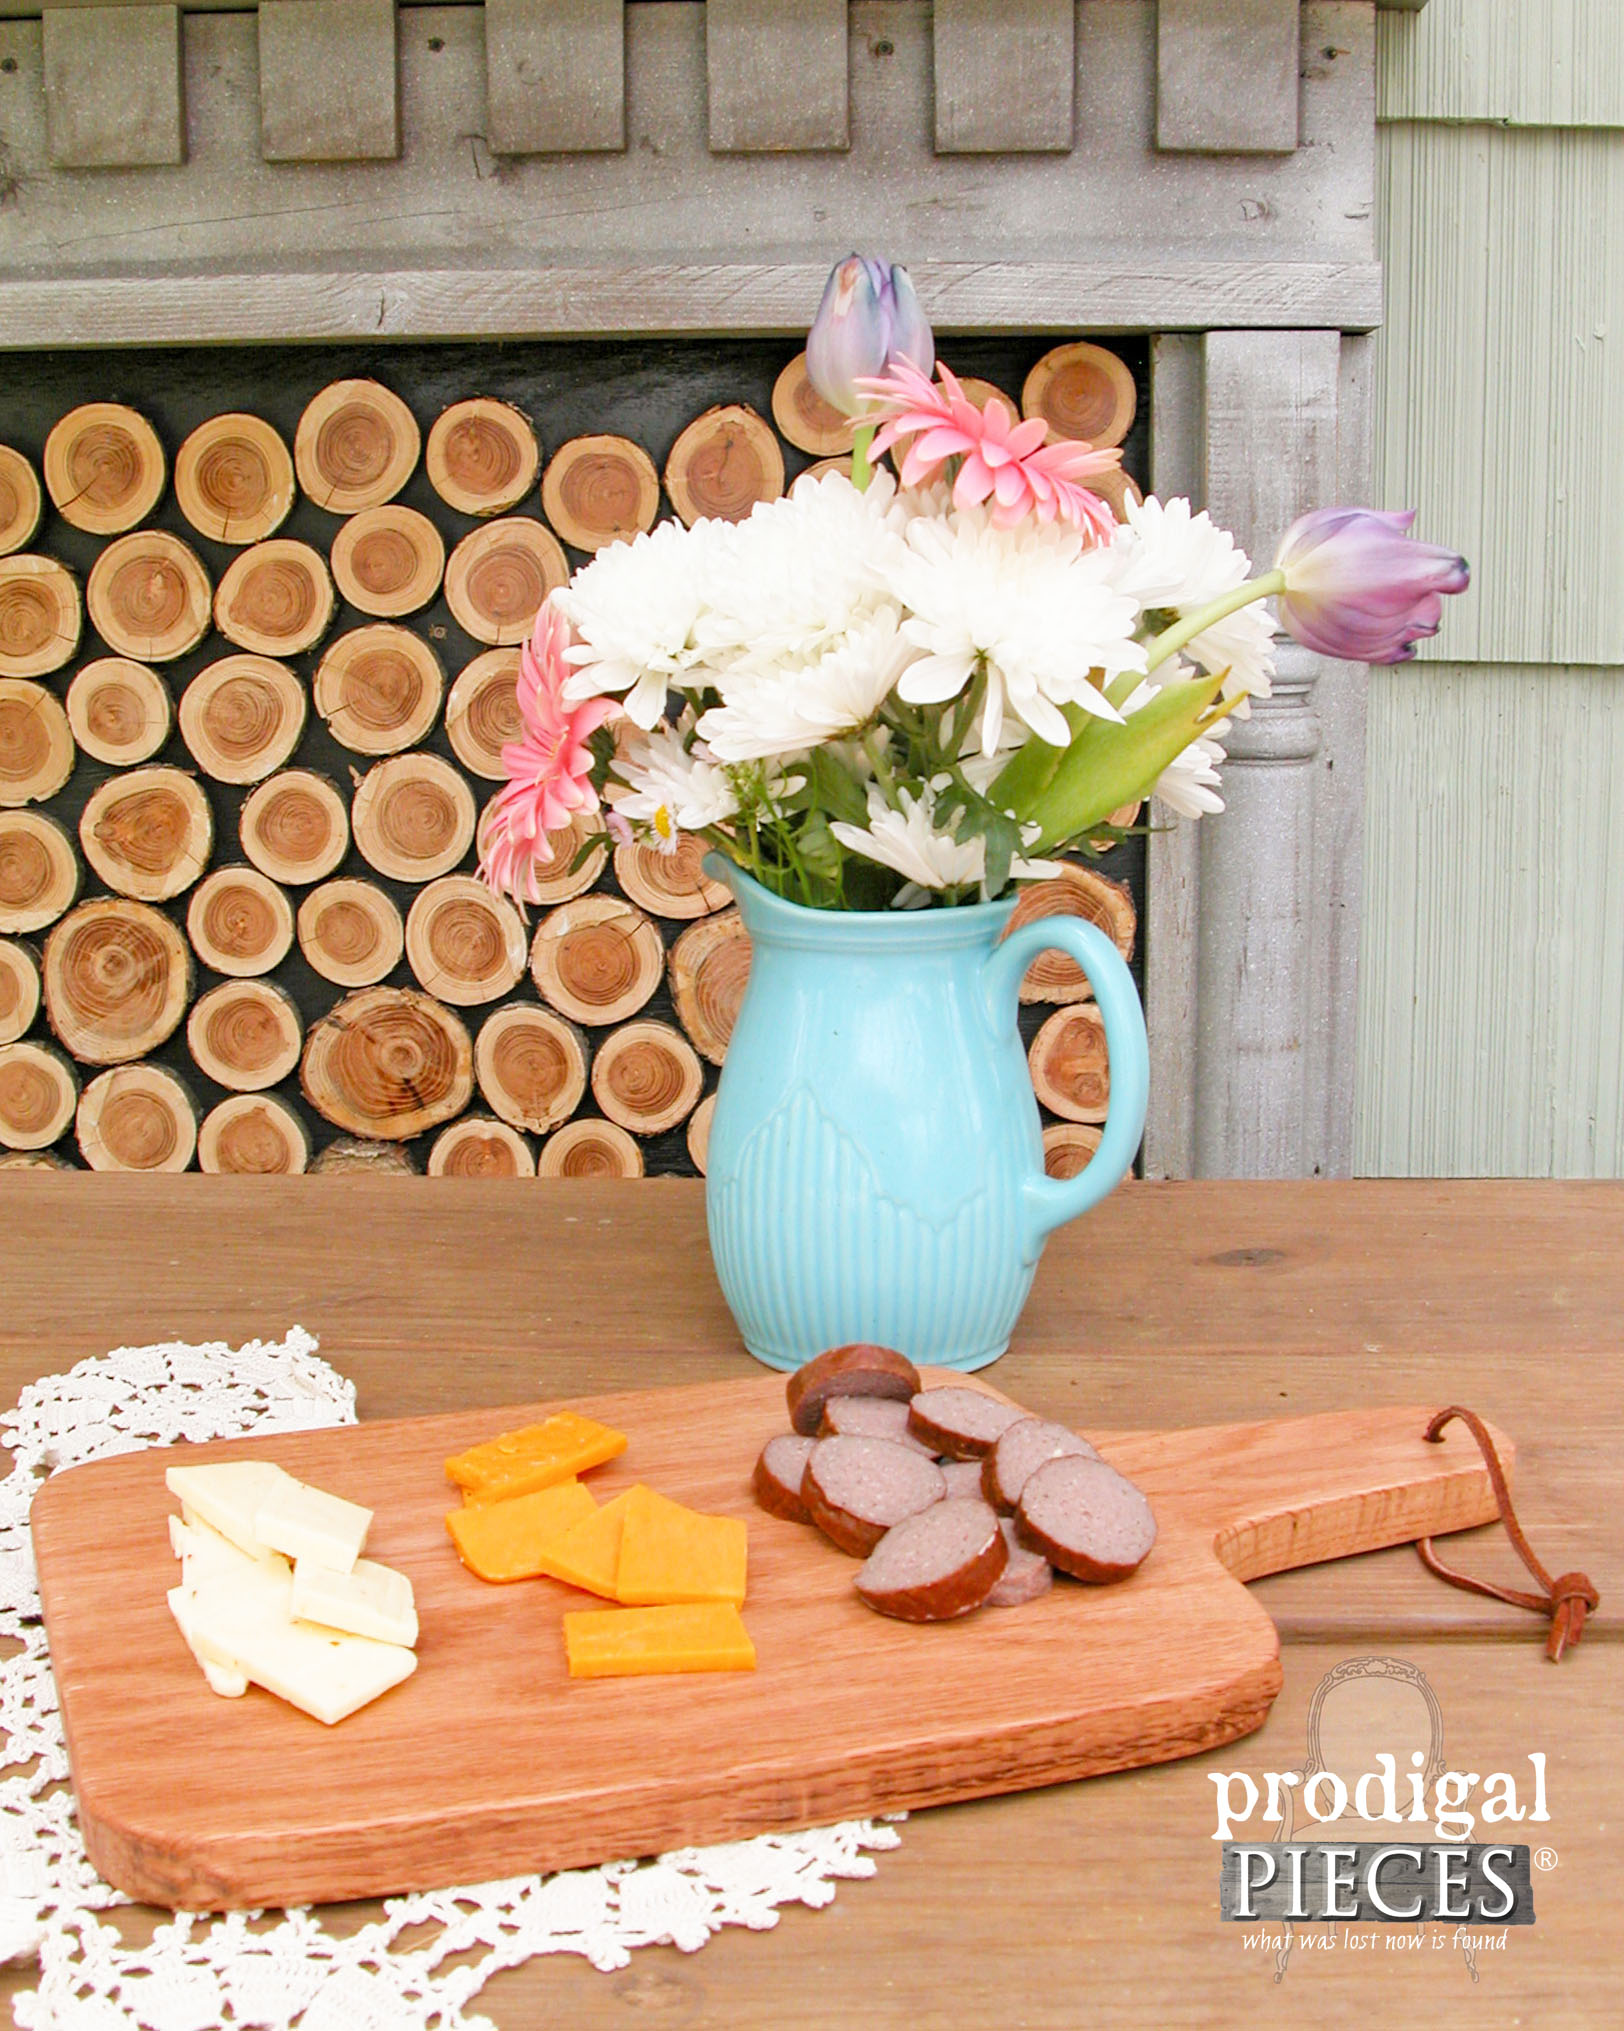 Create Your Own Farmhouse Cutting Board with this Tutorial by Prodigal Pieces | www.prodigalpieces.com